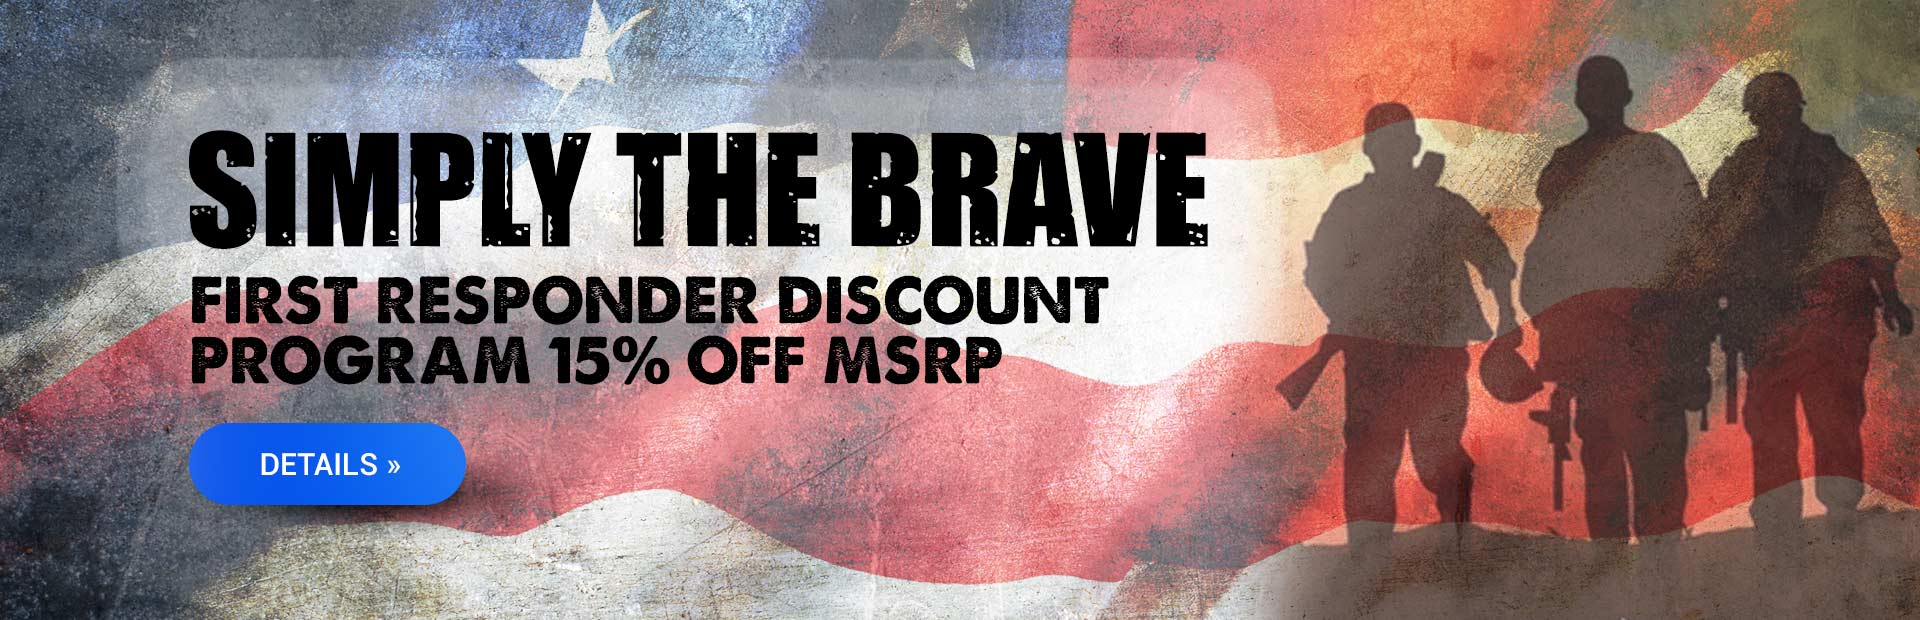 Scag Simply the Brave First Responder Discount Program: Get 15% off MSRP! Click here for details.